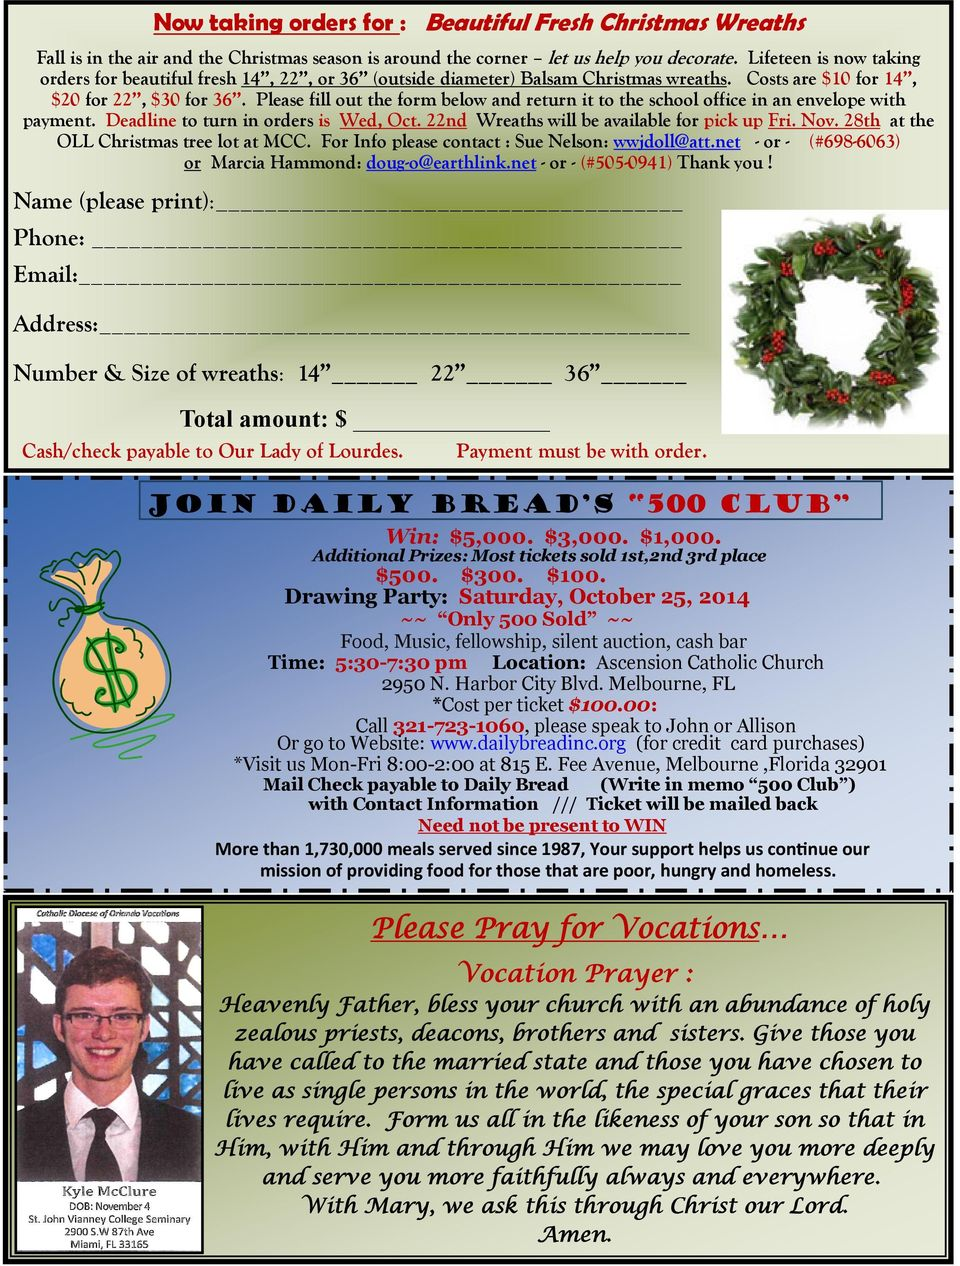 Please fill out the form below and return it to the school office in an envelope with payment. Deadline to turn in orders is Wed, Oct. 22nd Wreaths will be available for pick up Fri. Nov.